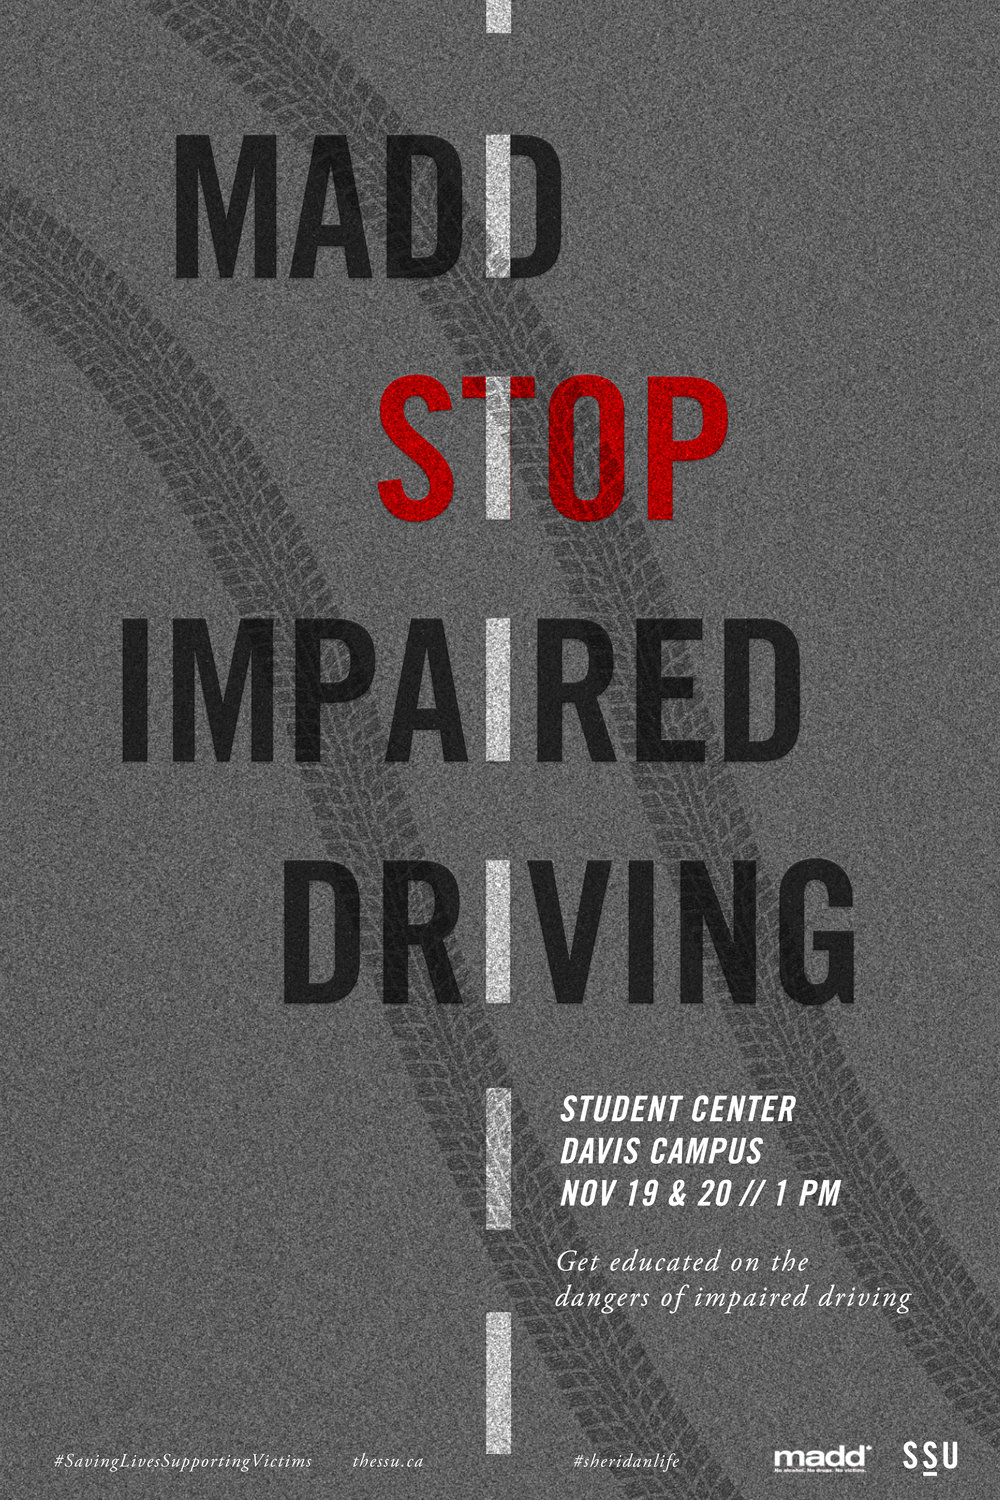 Nov19_MADD-Stop-Impaired-Driving_poster.jpg